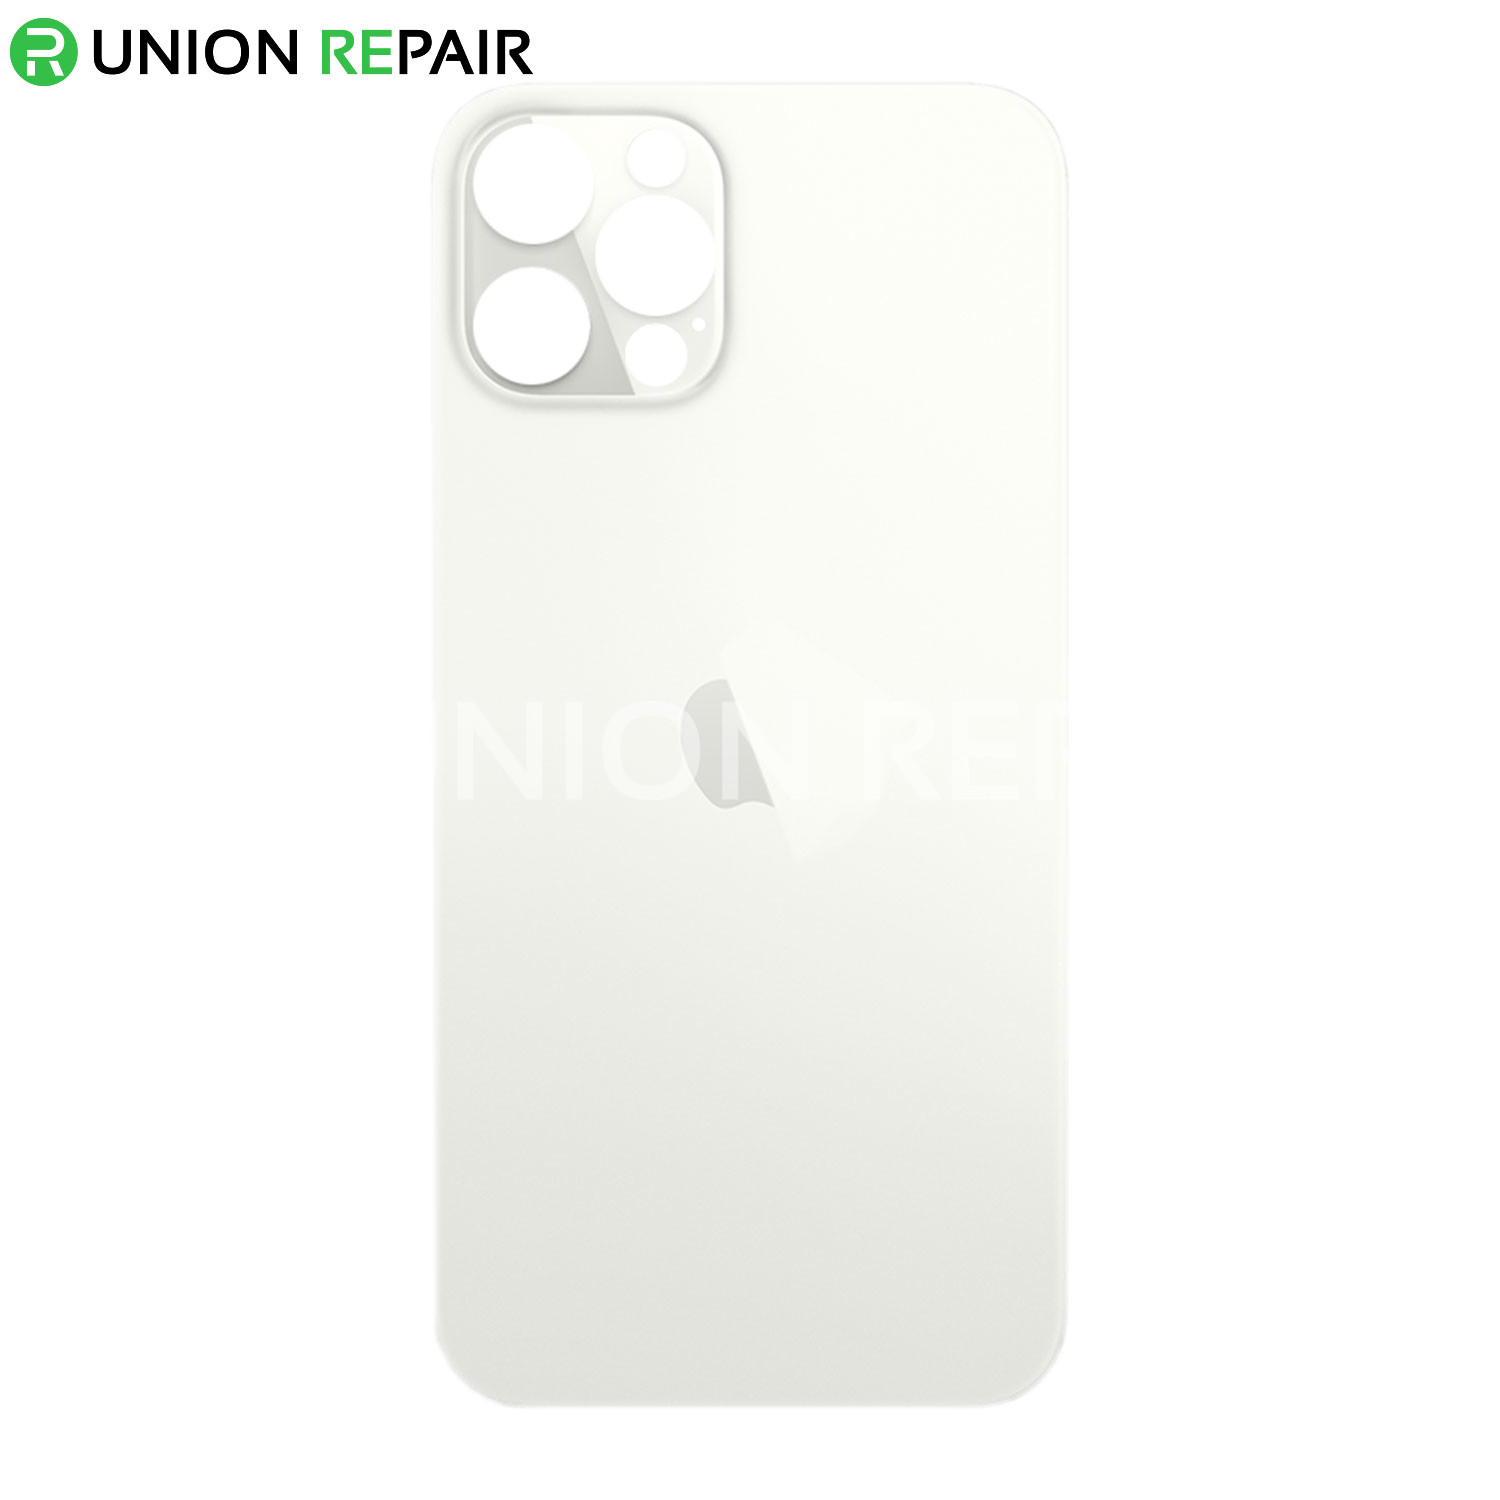 Replacement for iPhone 12 Pro Back Cover - Silver